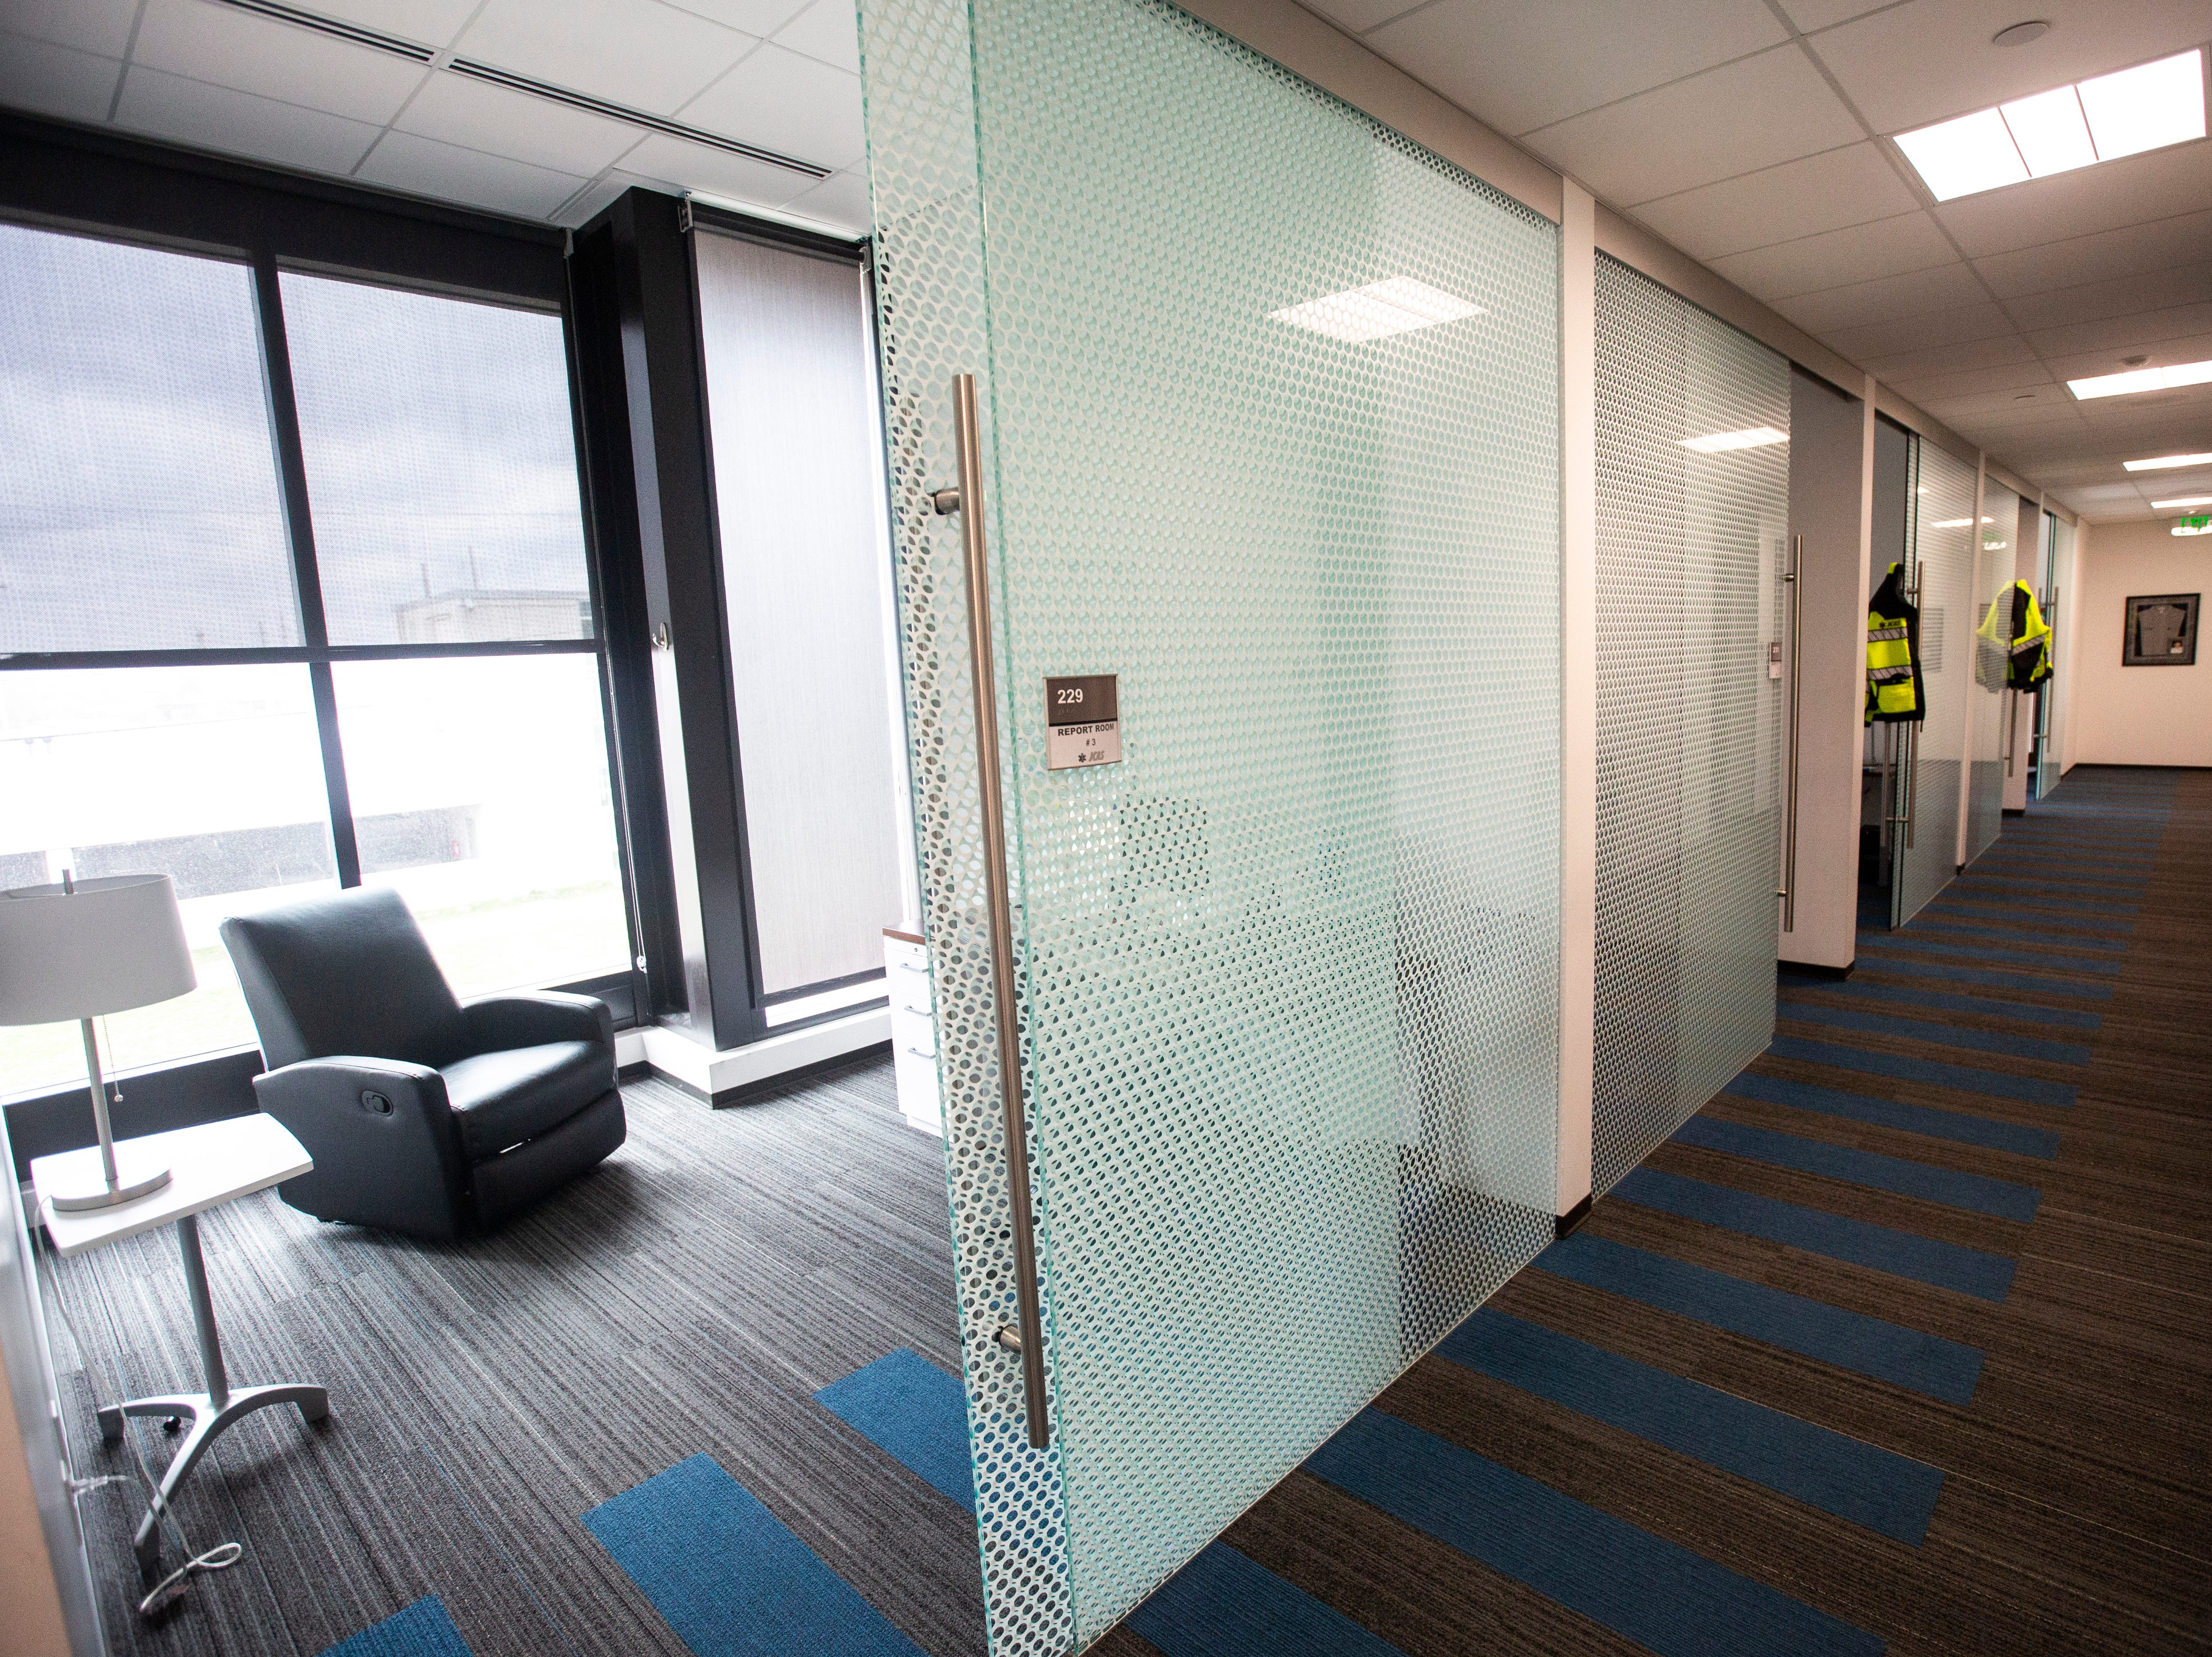 A second floor hallway is pictured on Wednesday, April 17, 2019, at the Johnson County Ambulance Services building at 808 S. Dubuque Street in Iowa City, Iowa.